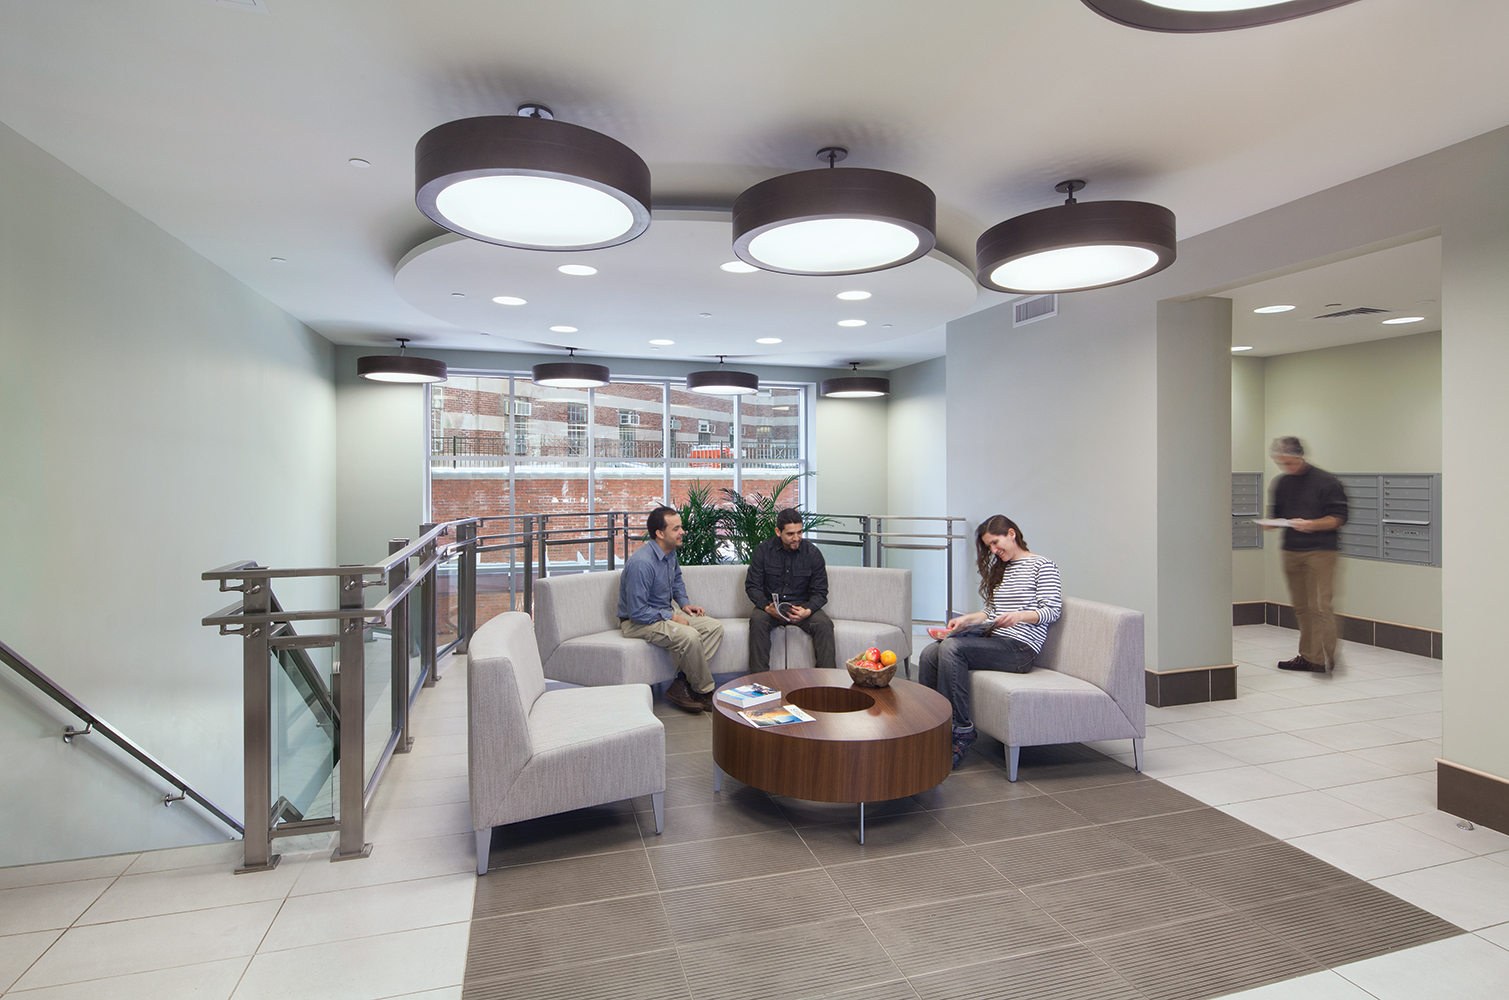 Omnience office lighting fixtures in a common seating area between a stairwell and a mailroom.